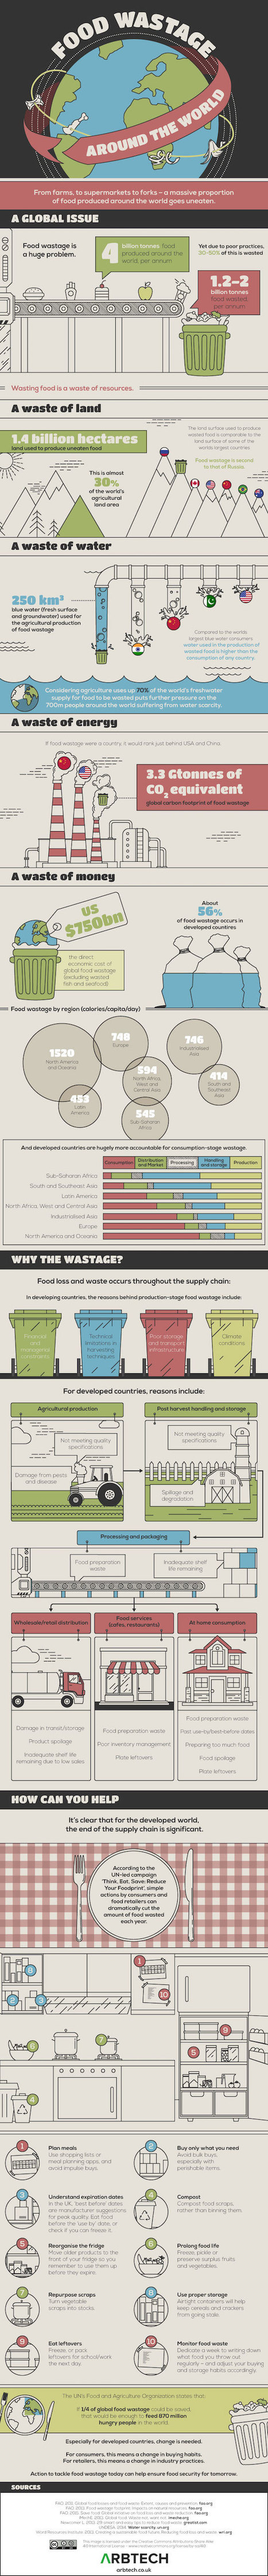 INFOGRAPHIC: How food waste has become a huge global problem | shubush design & wellbeing | Scoop.it